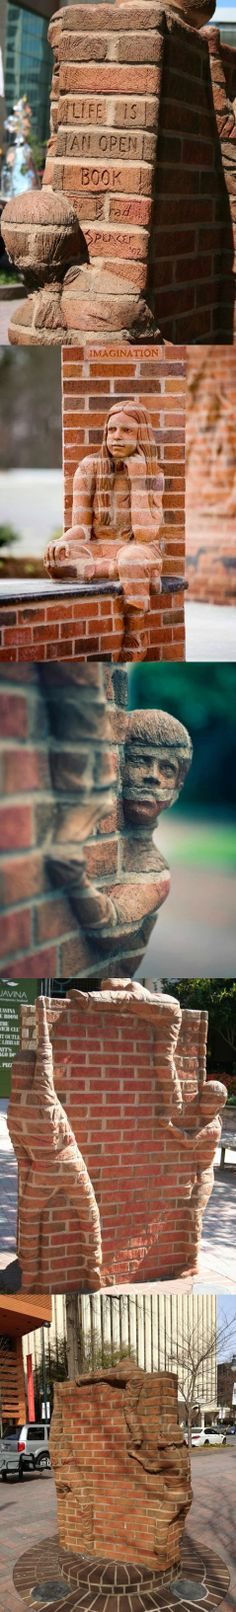 Brick Sculpture by Brad Spencer